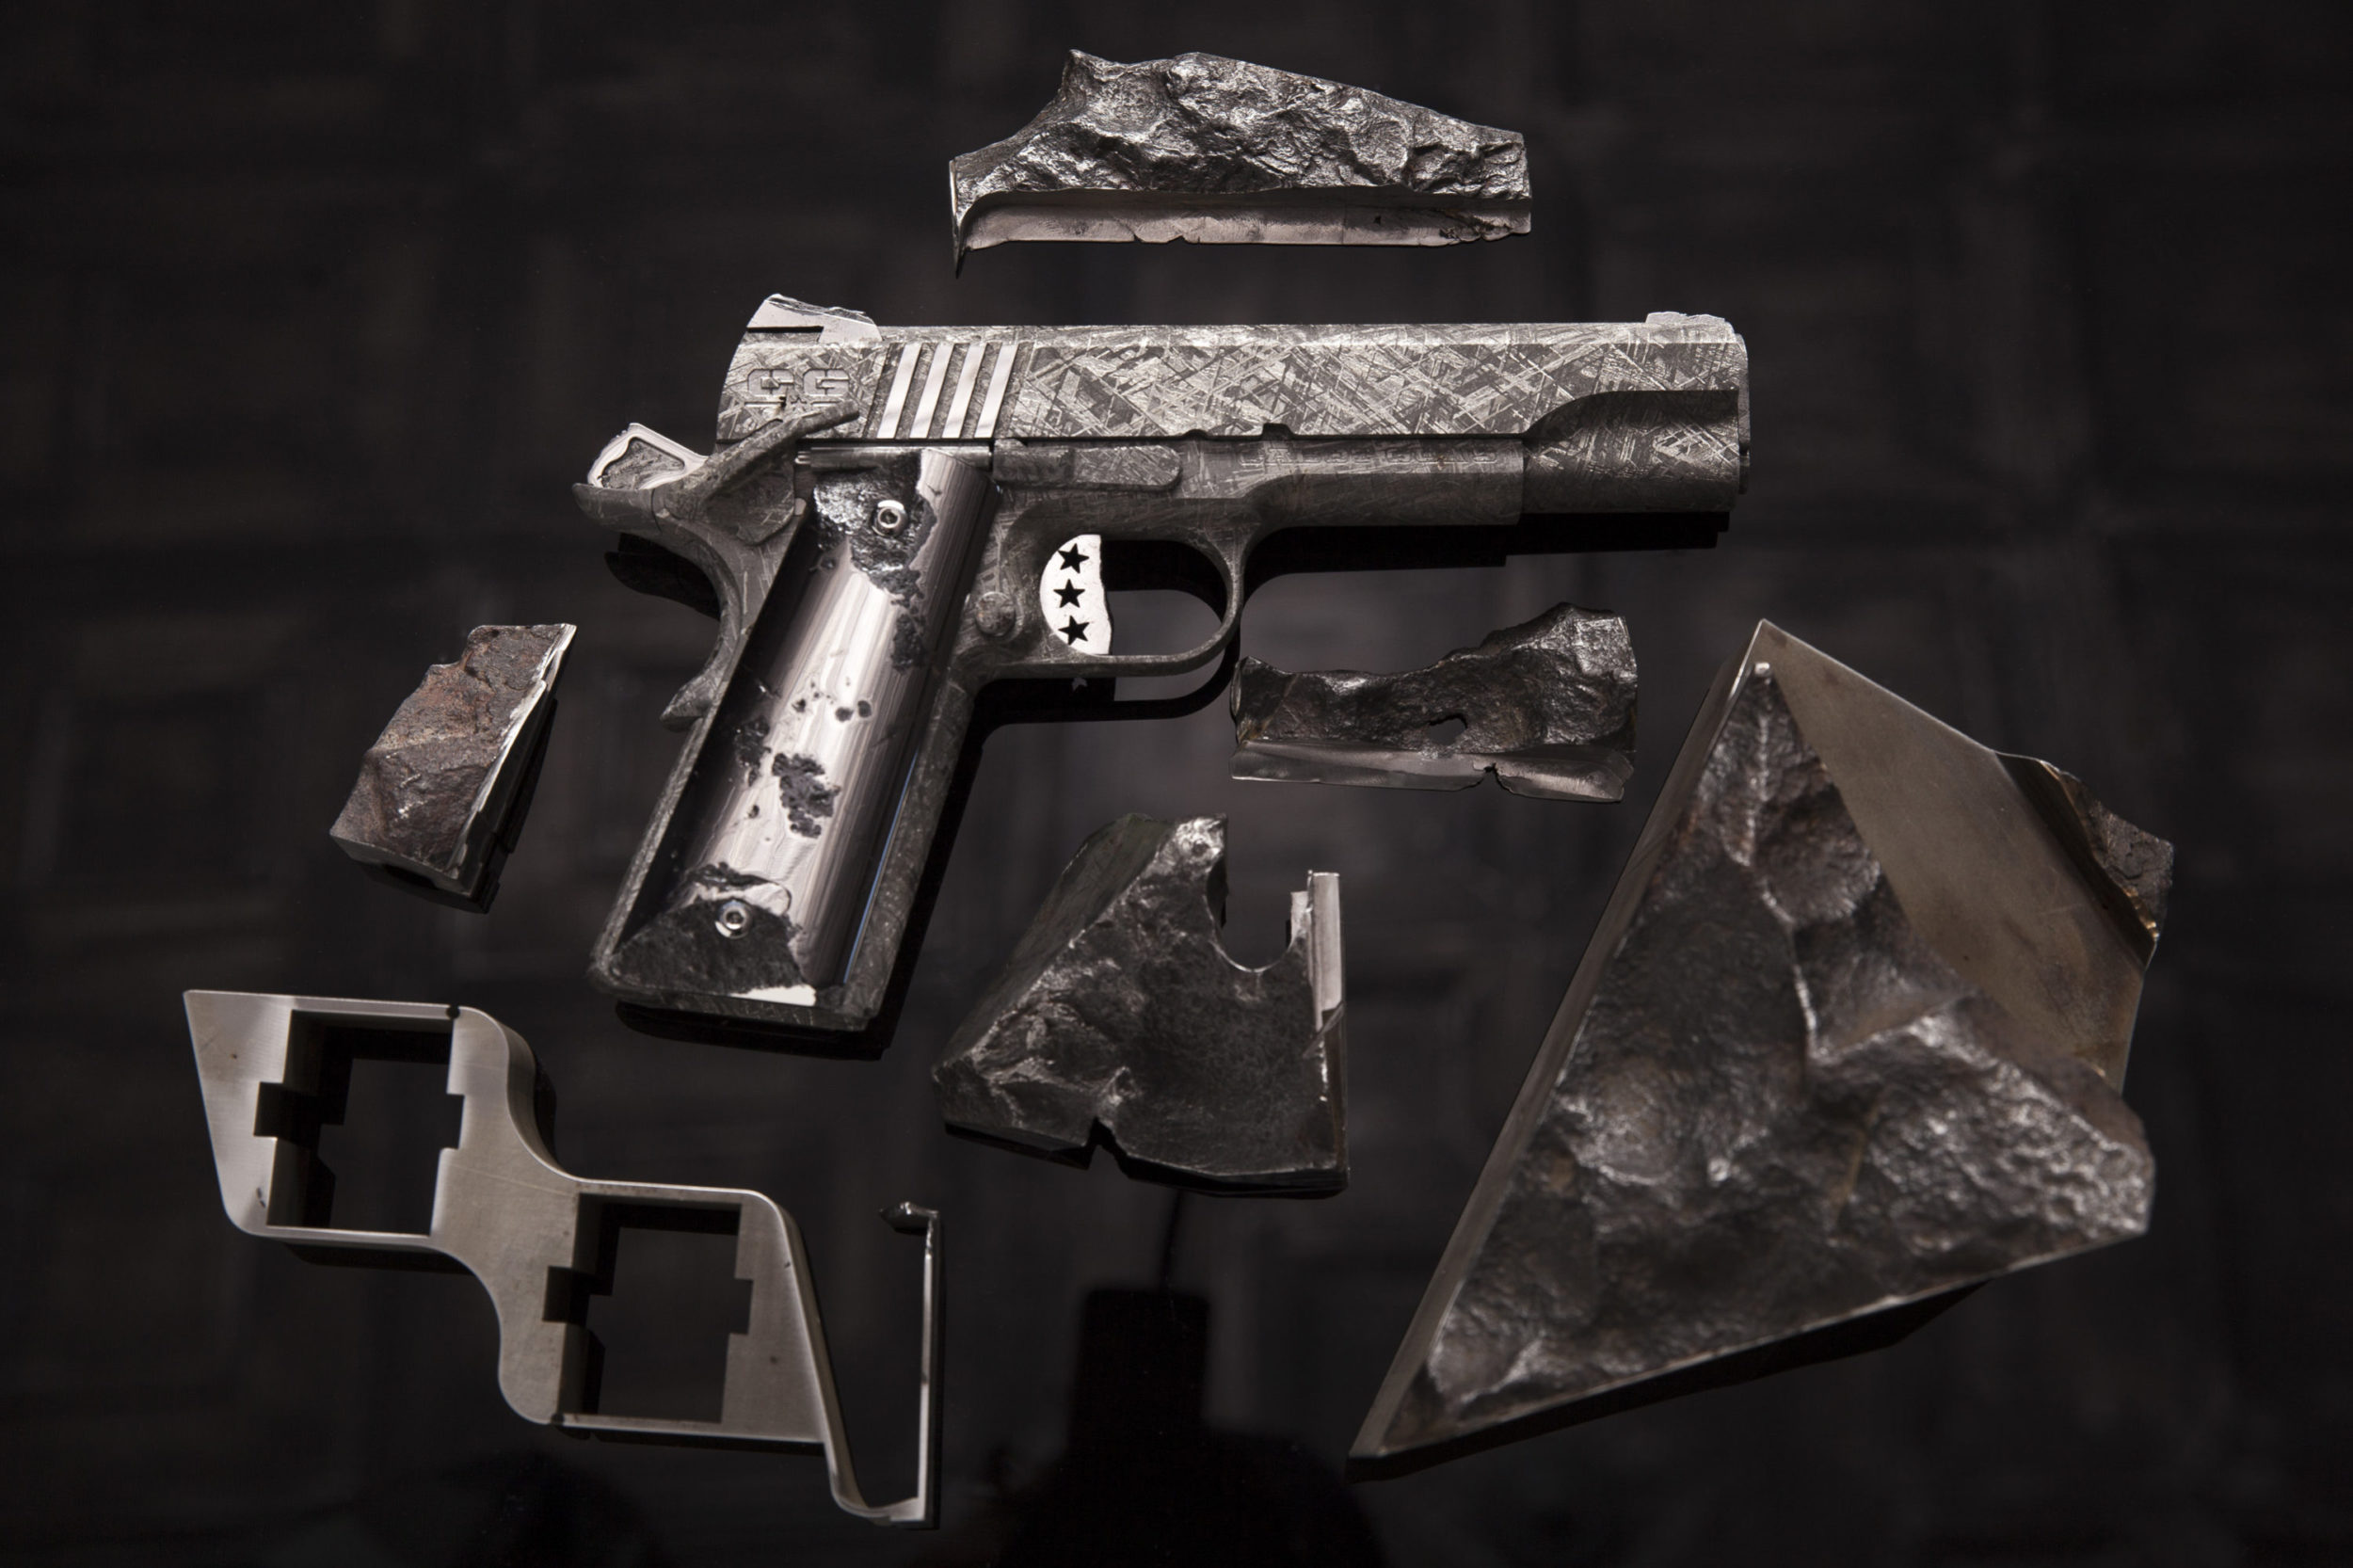 Cabot Bing Bang one of a kind meteorite 1911 pistols